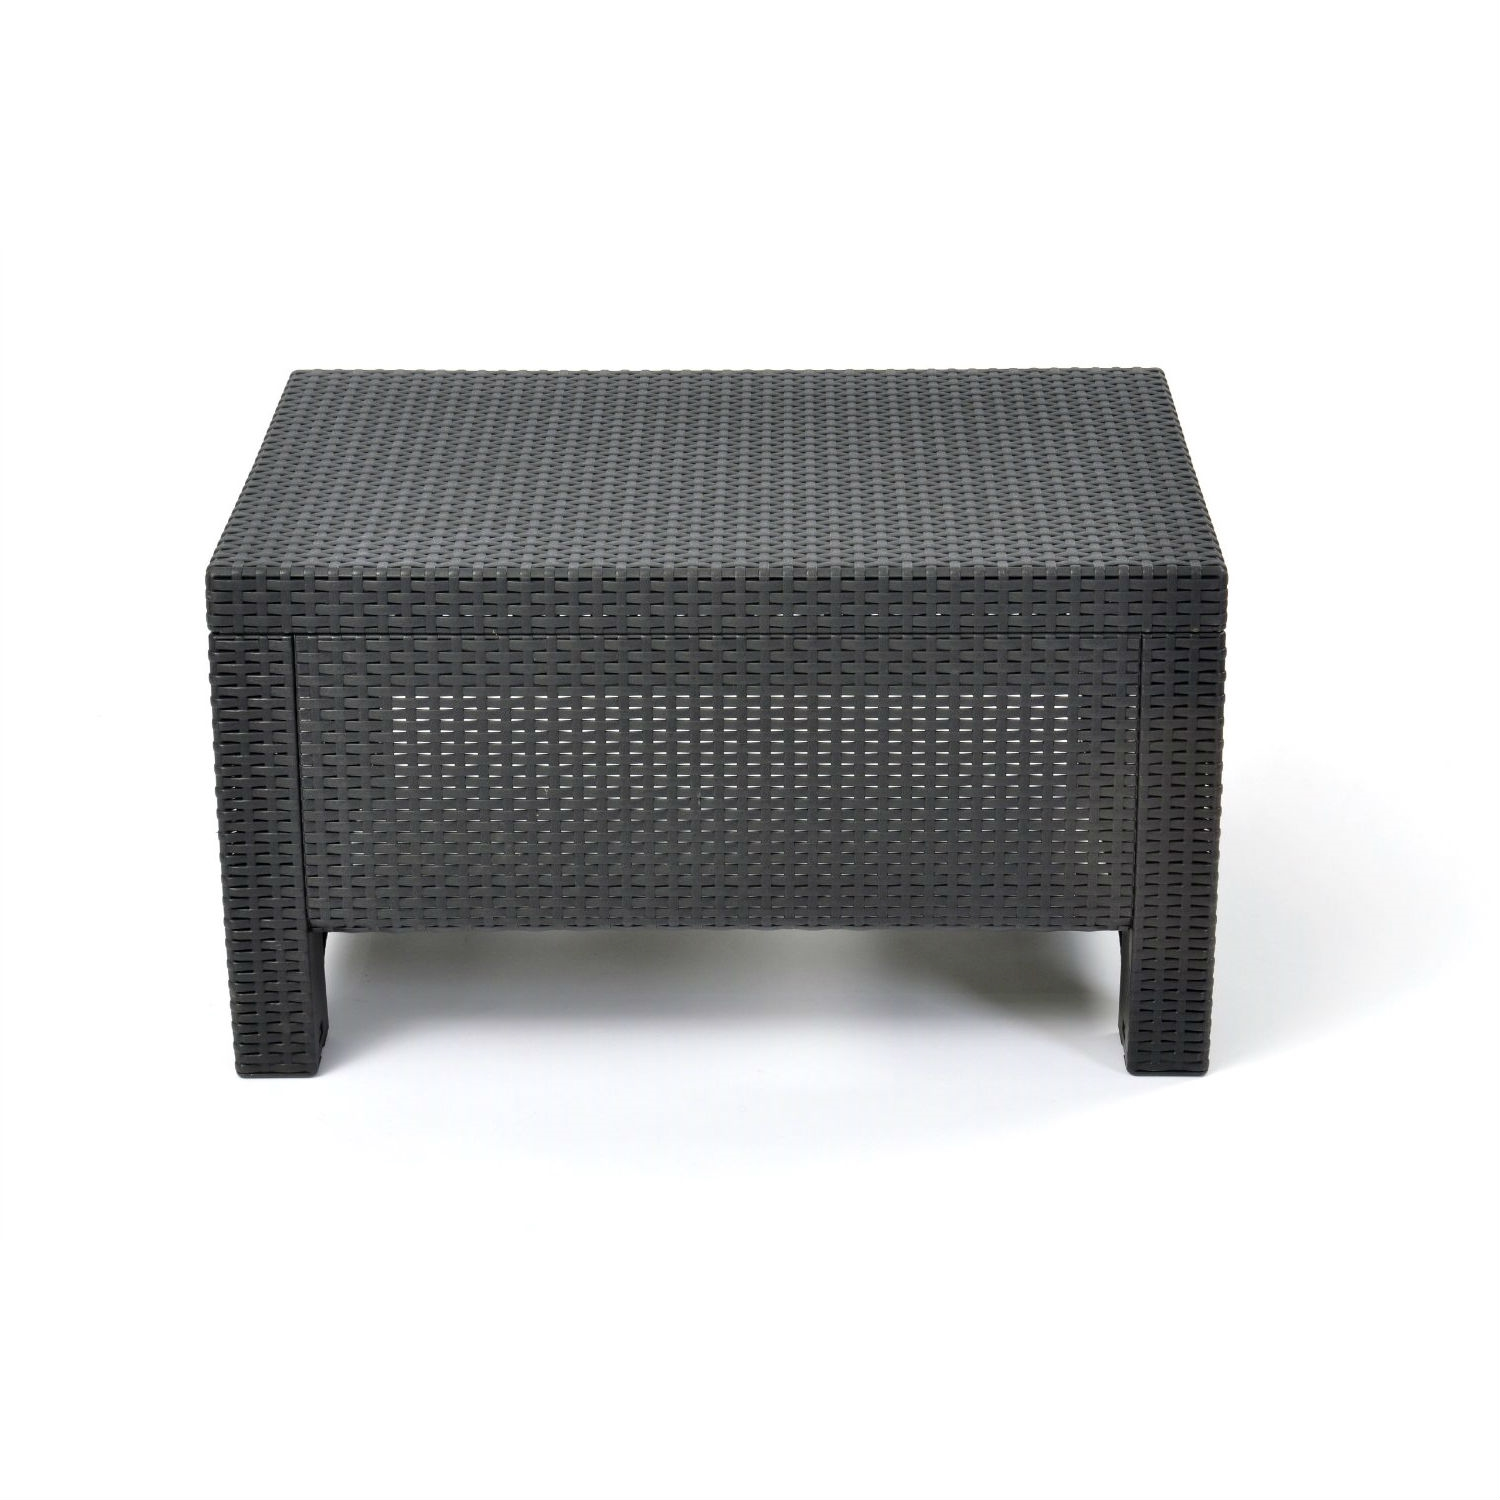 Black Wicker Coffee Table: Contemporary Outdoor Coffee Table In Durable Black Plastic